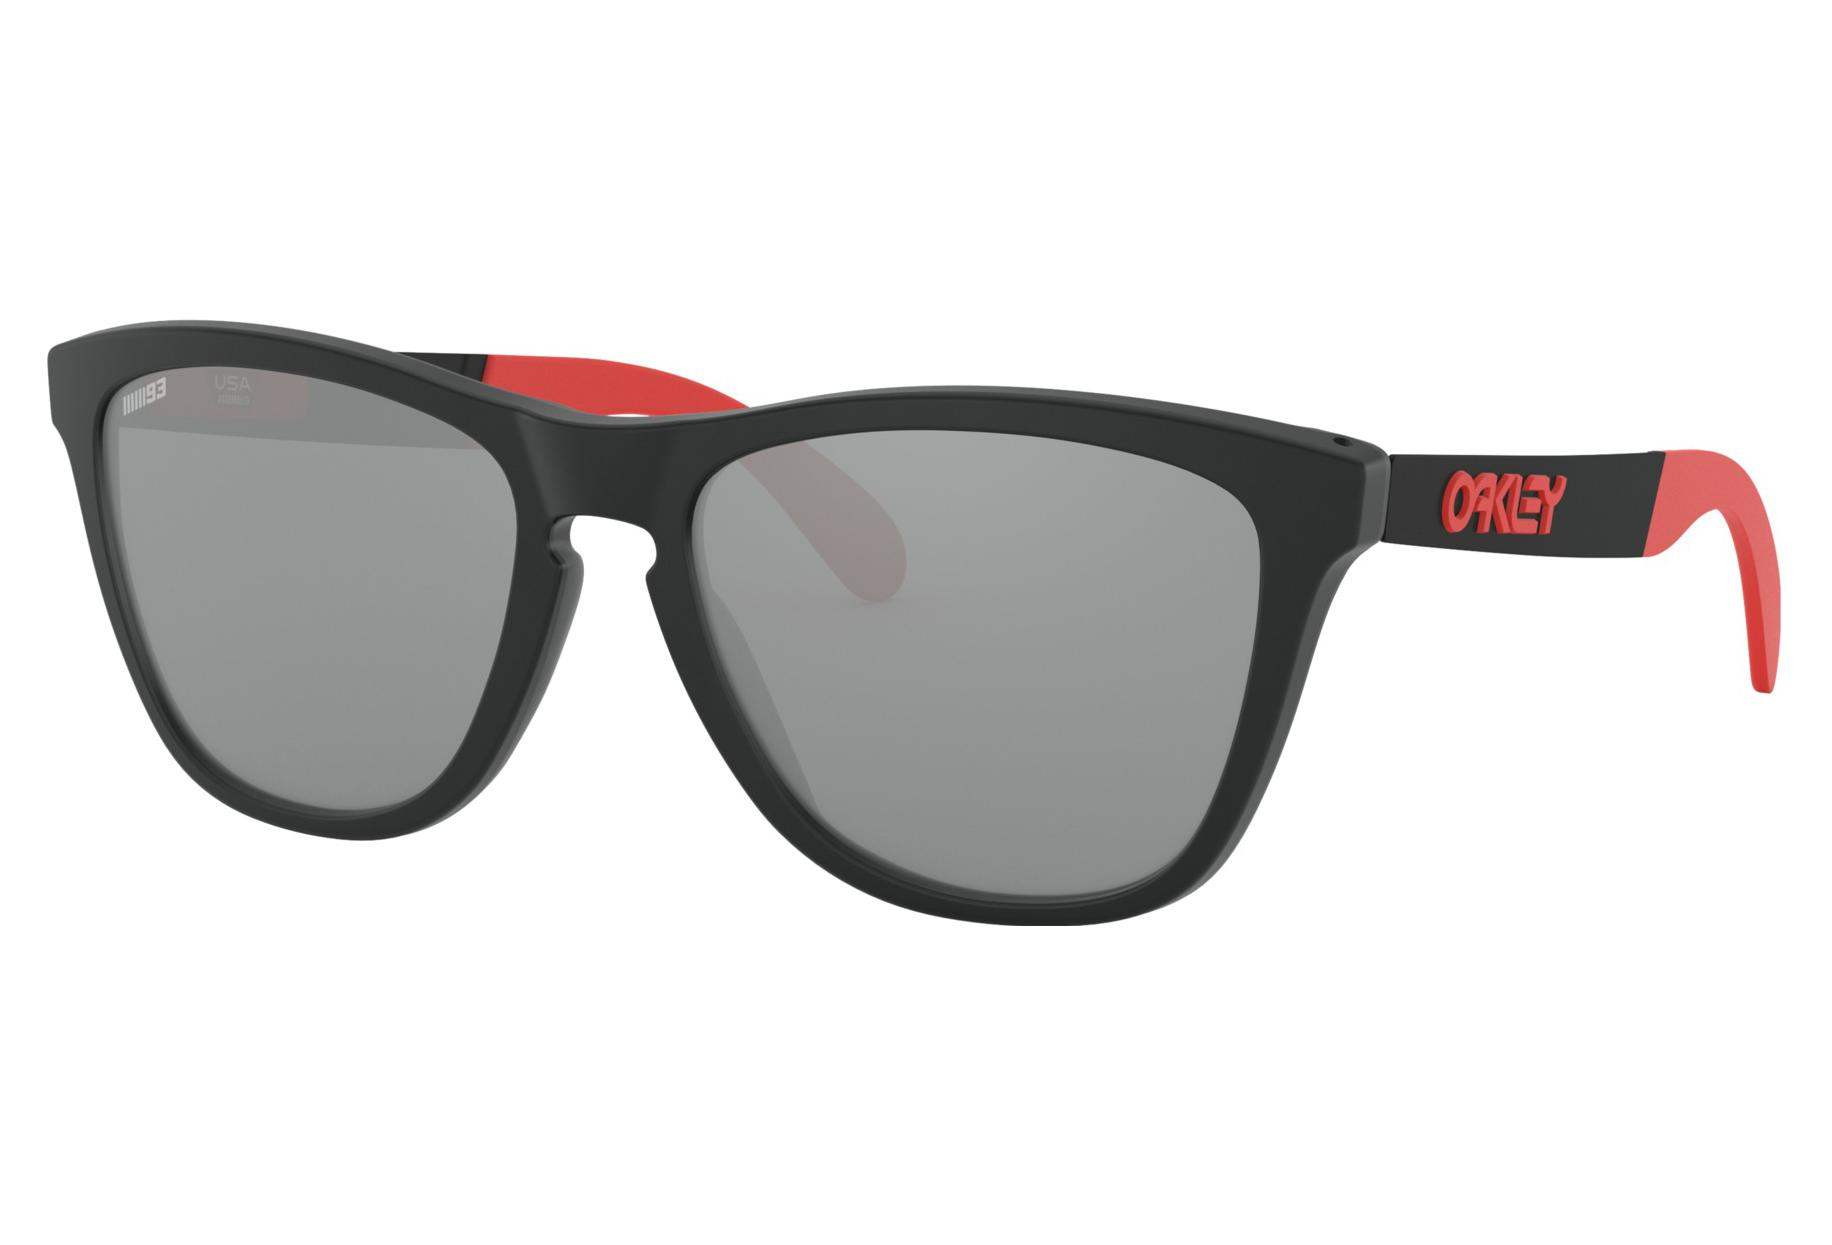 de1b4056d2 Oakley Sunglasses Frogskins Mix Marc Marquez Signature Series / Matte Black  Ink / Prizm Black / Ref.OO9428-1155 | Alltricks.com